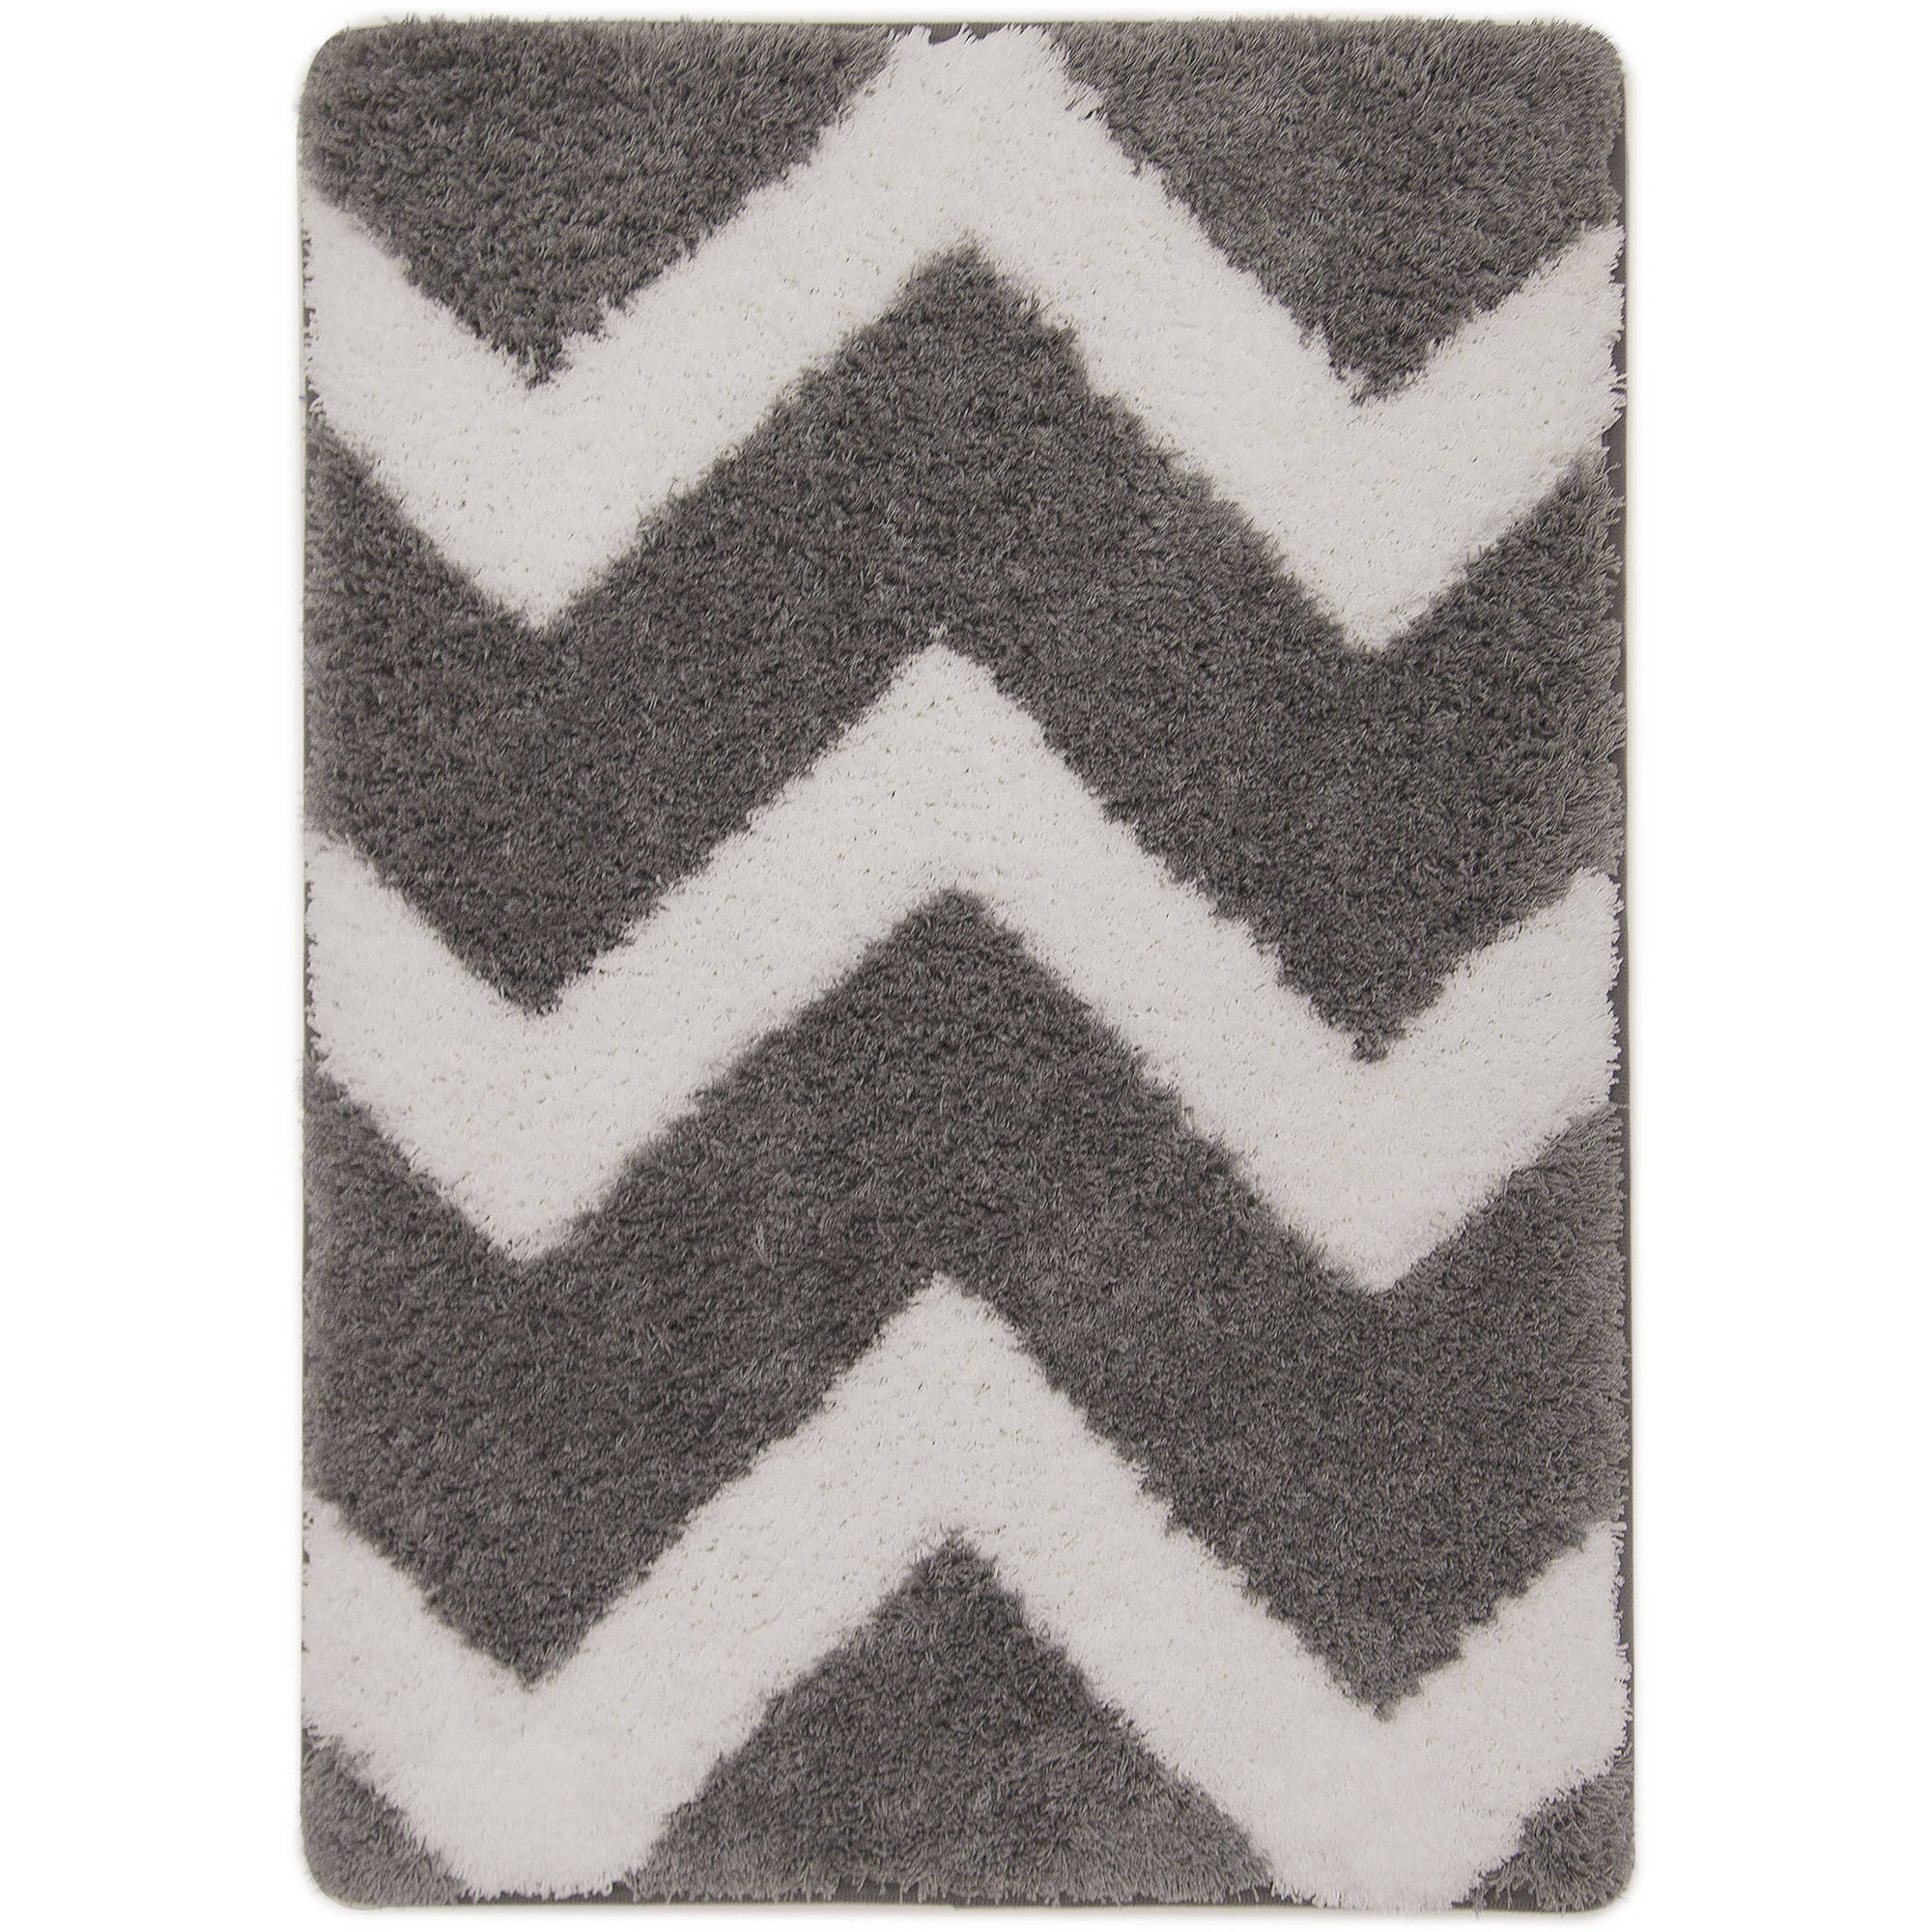 Mainstays True Color Memory Foam Bath Rug, Grey Flannel